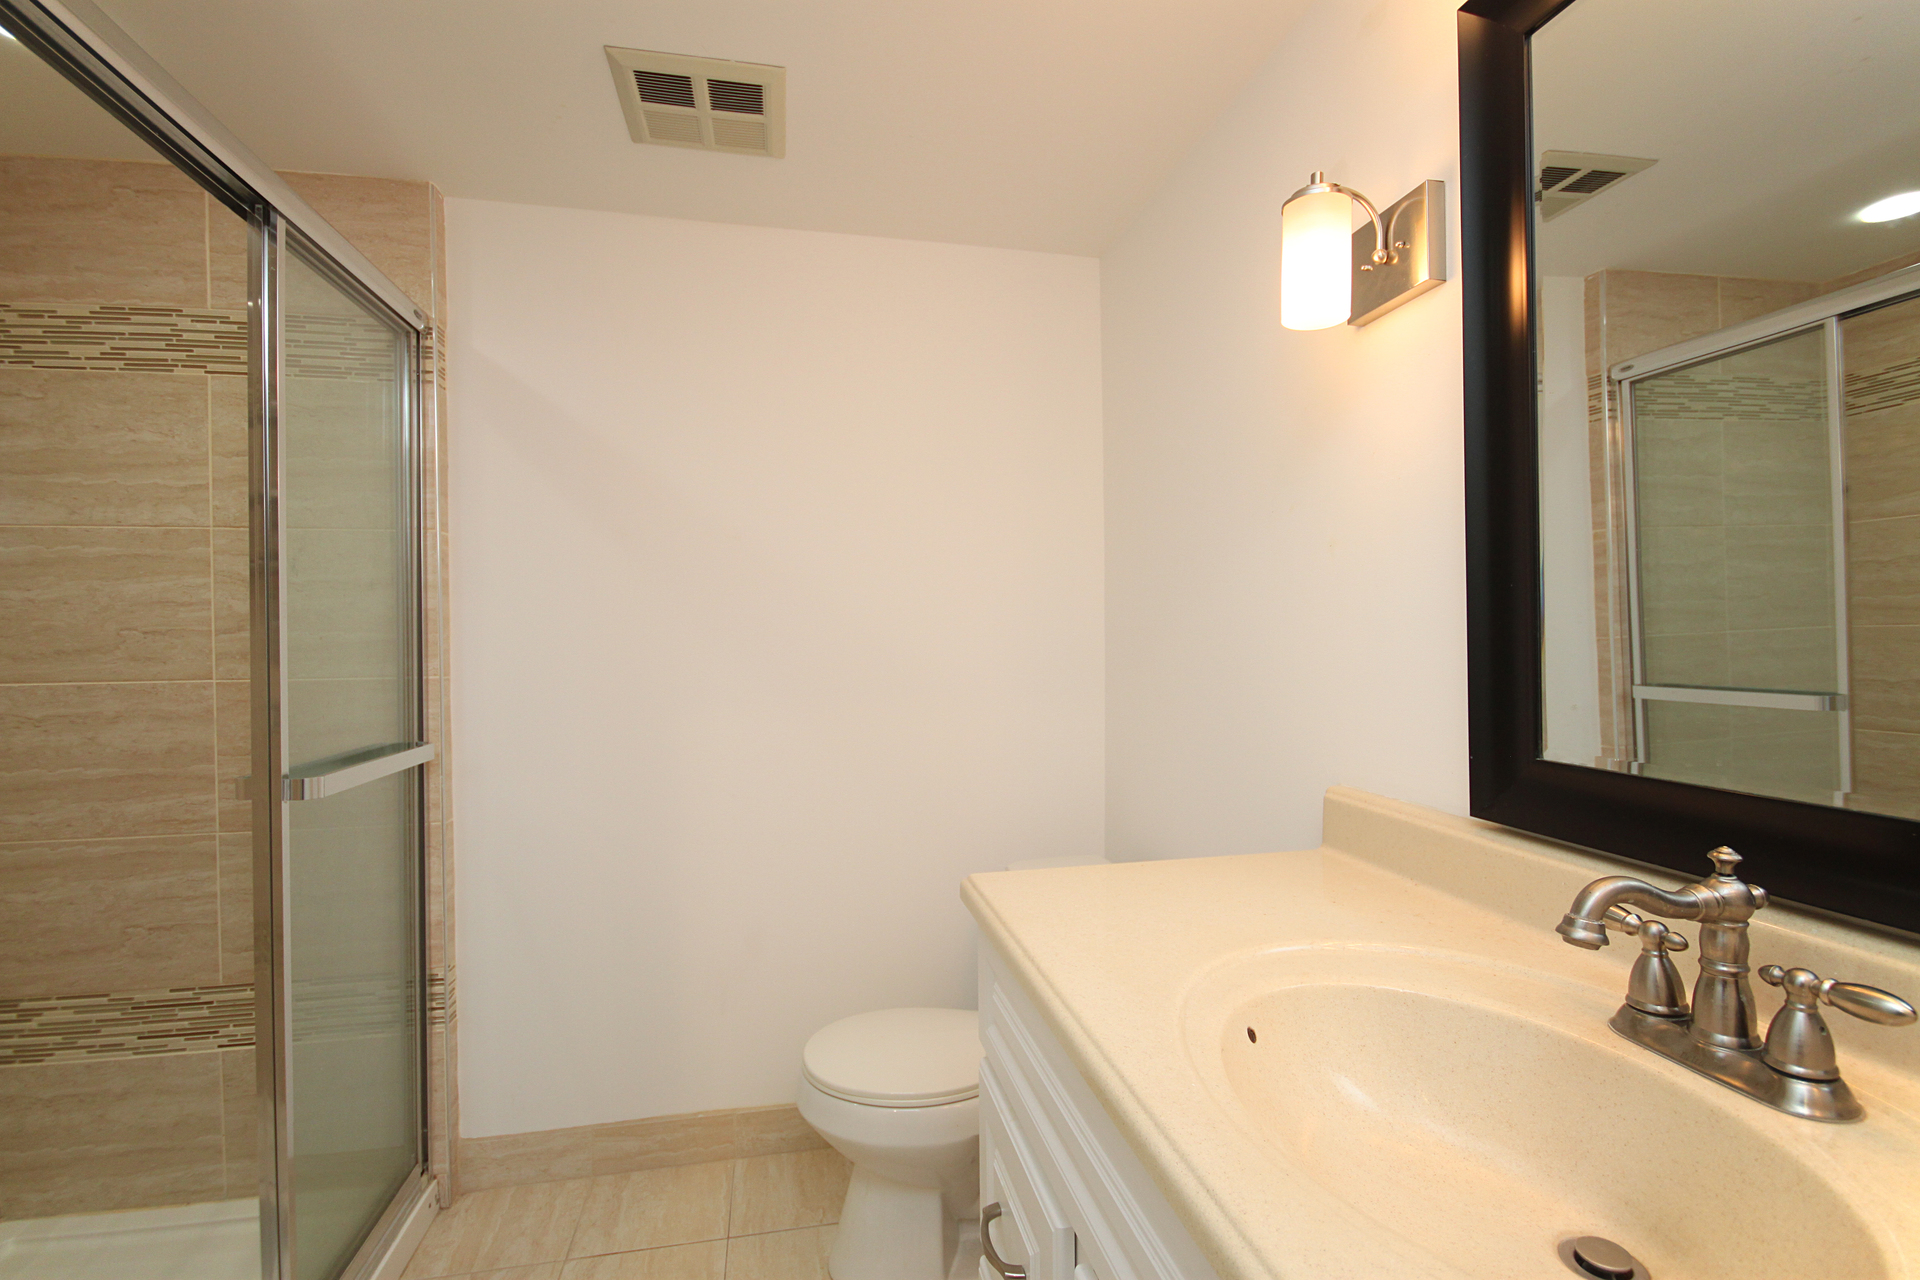 3 Piece Ensuite Bathroom at 1002 - 205 Wynford Drive, Banbury-Don Mills, Toronto